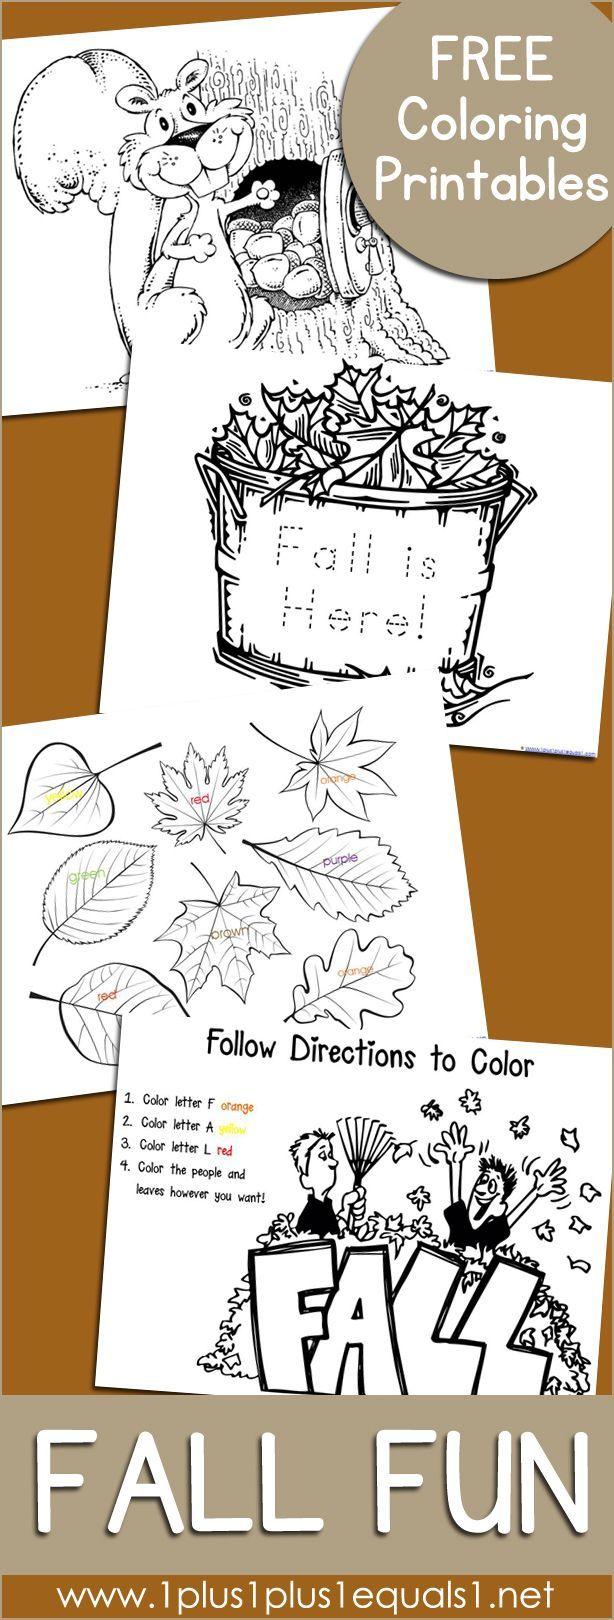 Free coloring pages us history - Free Fall Fun Coloring Coloring Pages And Coloring Activities For Kids